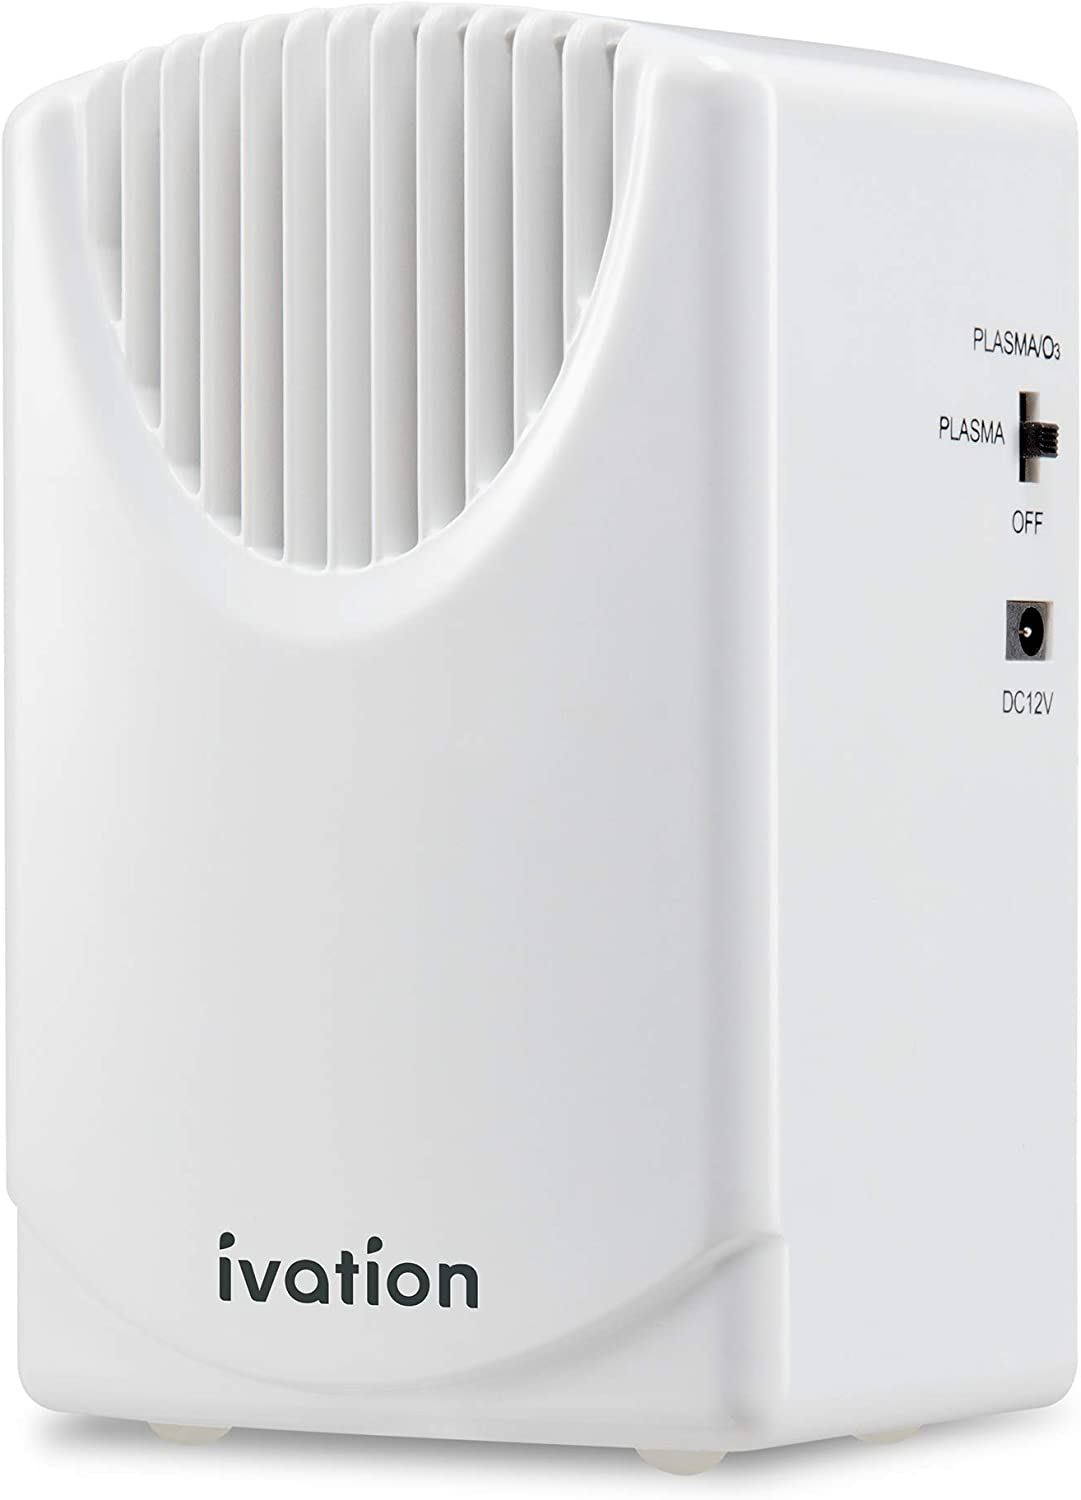 Ivation Vehicle Air Cleaner Ozone & Plasma Generator 300 MG/H, Air Ionizer & Odor Eradicator with Home & Car Power Cords, Eliminates Odors and Pollutants for Areas Up to 2,500 Sq/Ft